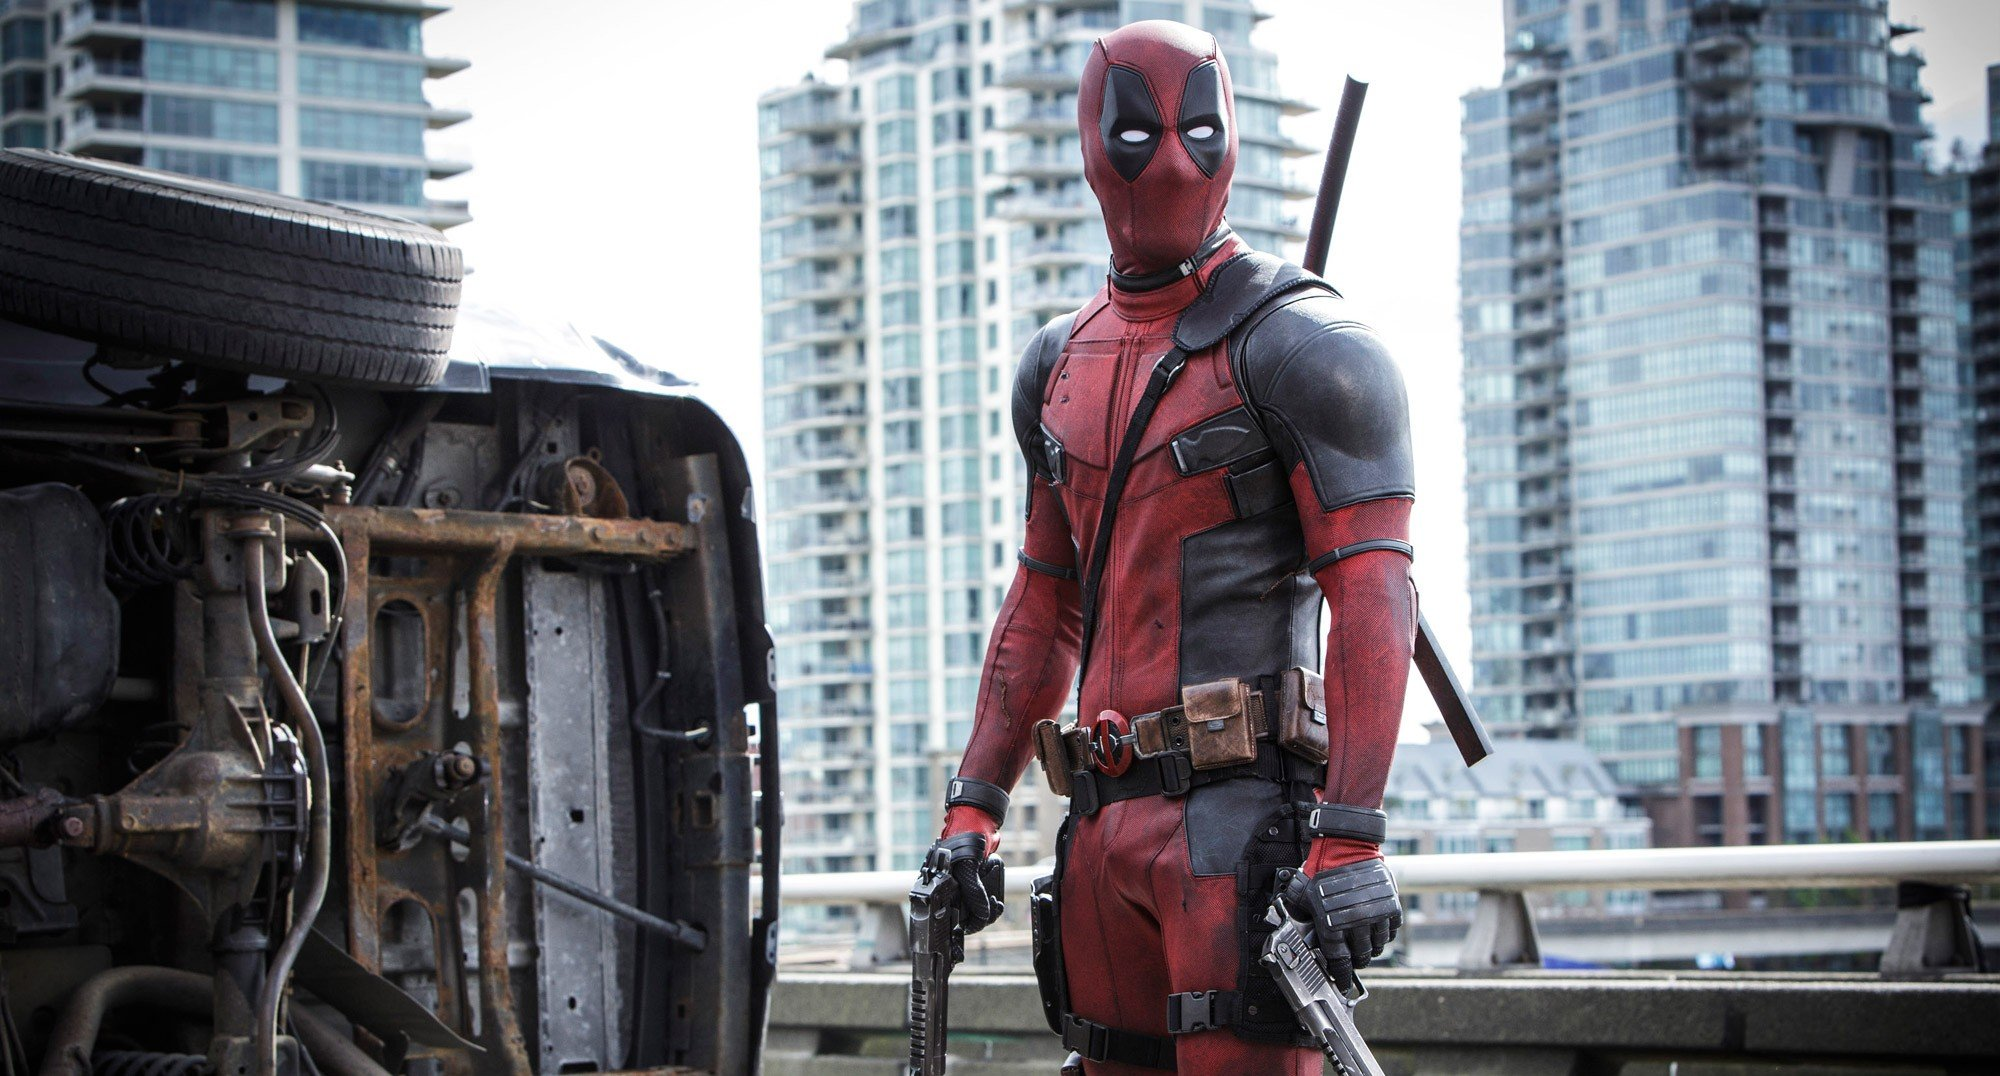 deadpool-gallery-03-gallery-image-1